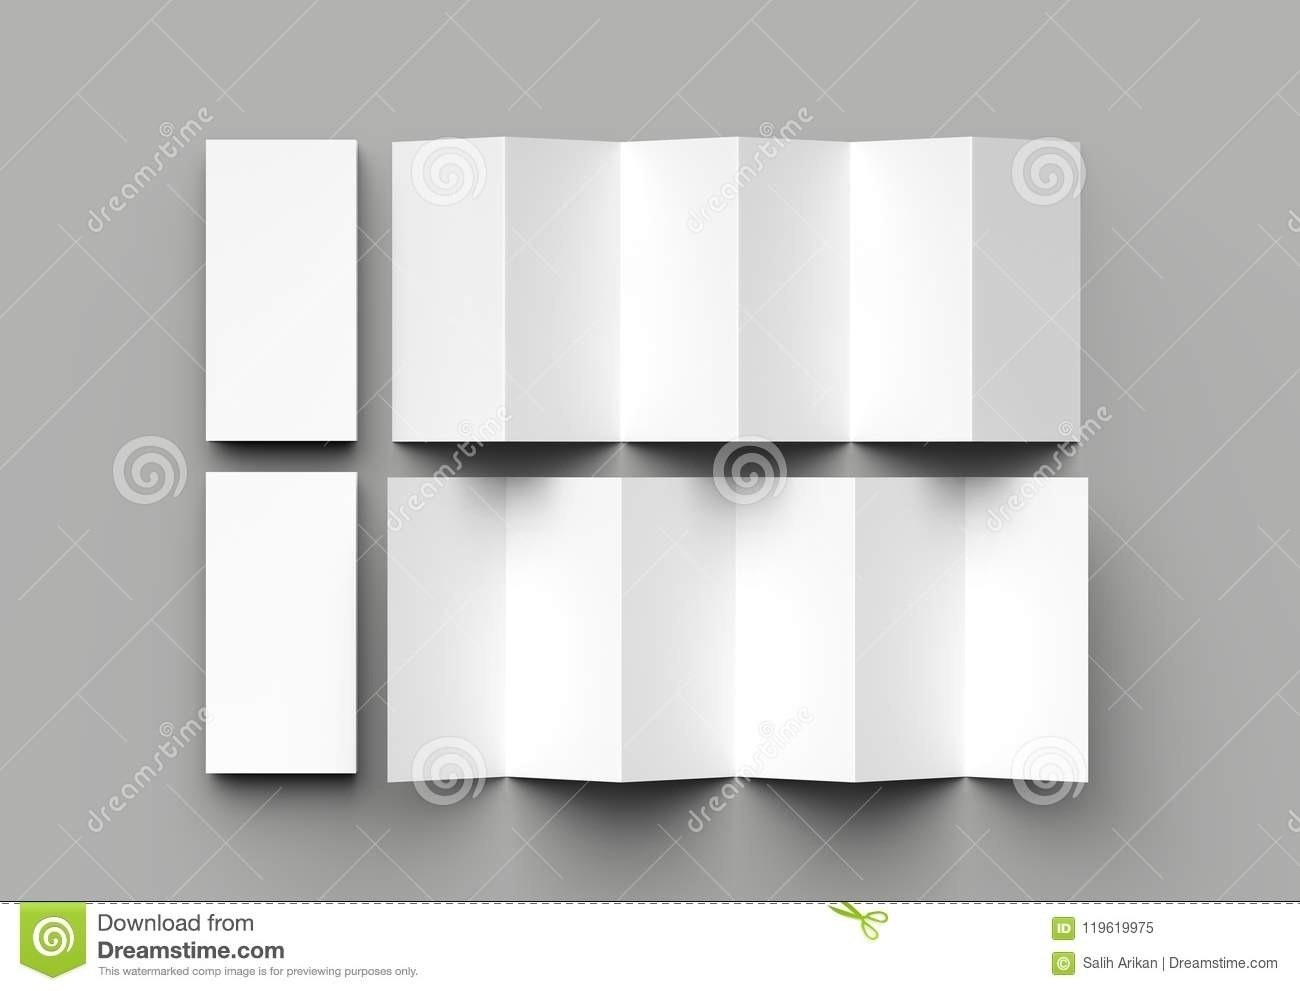 12 Page Leaflet, 6 Panel Accordion Fold - Z Fold Vertical Inside 12 Page Brochure Template